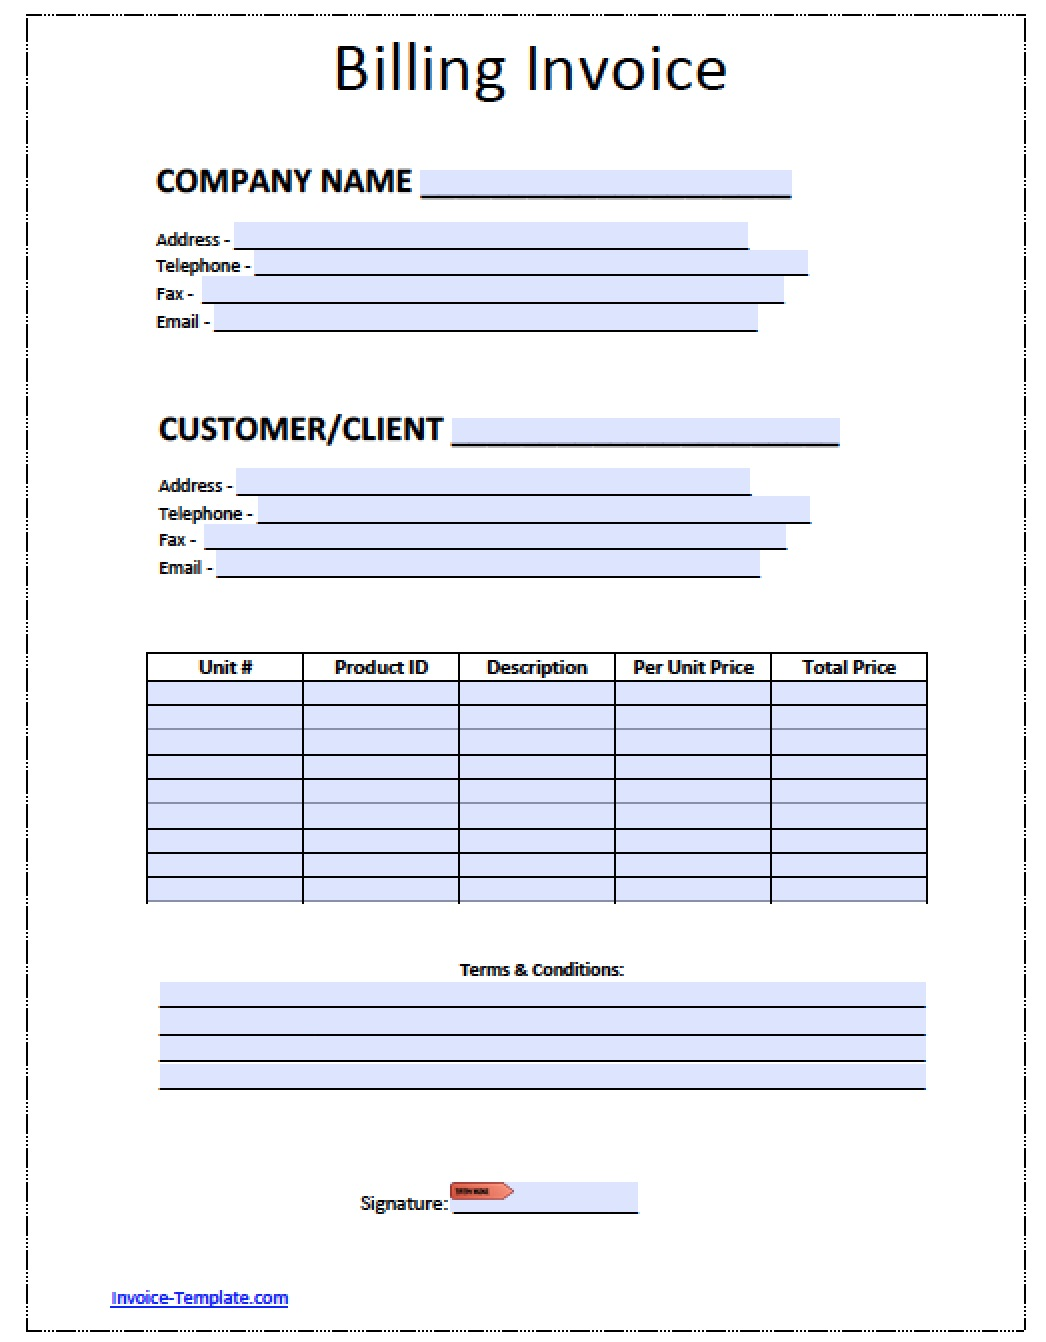 Reliefworkersus  Unique Billing Invoice Invoices Faq U Cloudflare Support Billing  With Hot Free Billing Invoice Template  Excel  Pdf  Word Doc  Billing With Extraordinary Examples Of Tax Invoices Also How To Print Invoice In Addition Invoice Example Excel And Receipt Or Invoice As Well As Uk Invoice Sample Additionally English Invoice From Happytomco With Reliefworkersus  Hot Billing Invoice Invoices Faq U Cloudflare Support Billing  With Extraordinary Free Billing Invoice Template  Excel  Pdf  Word Doc  Billing And Unique Examples Of Tax Invoices Also How To Print Invoice In Addition Invoice Example Excel From Happytomco